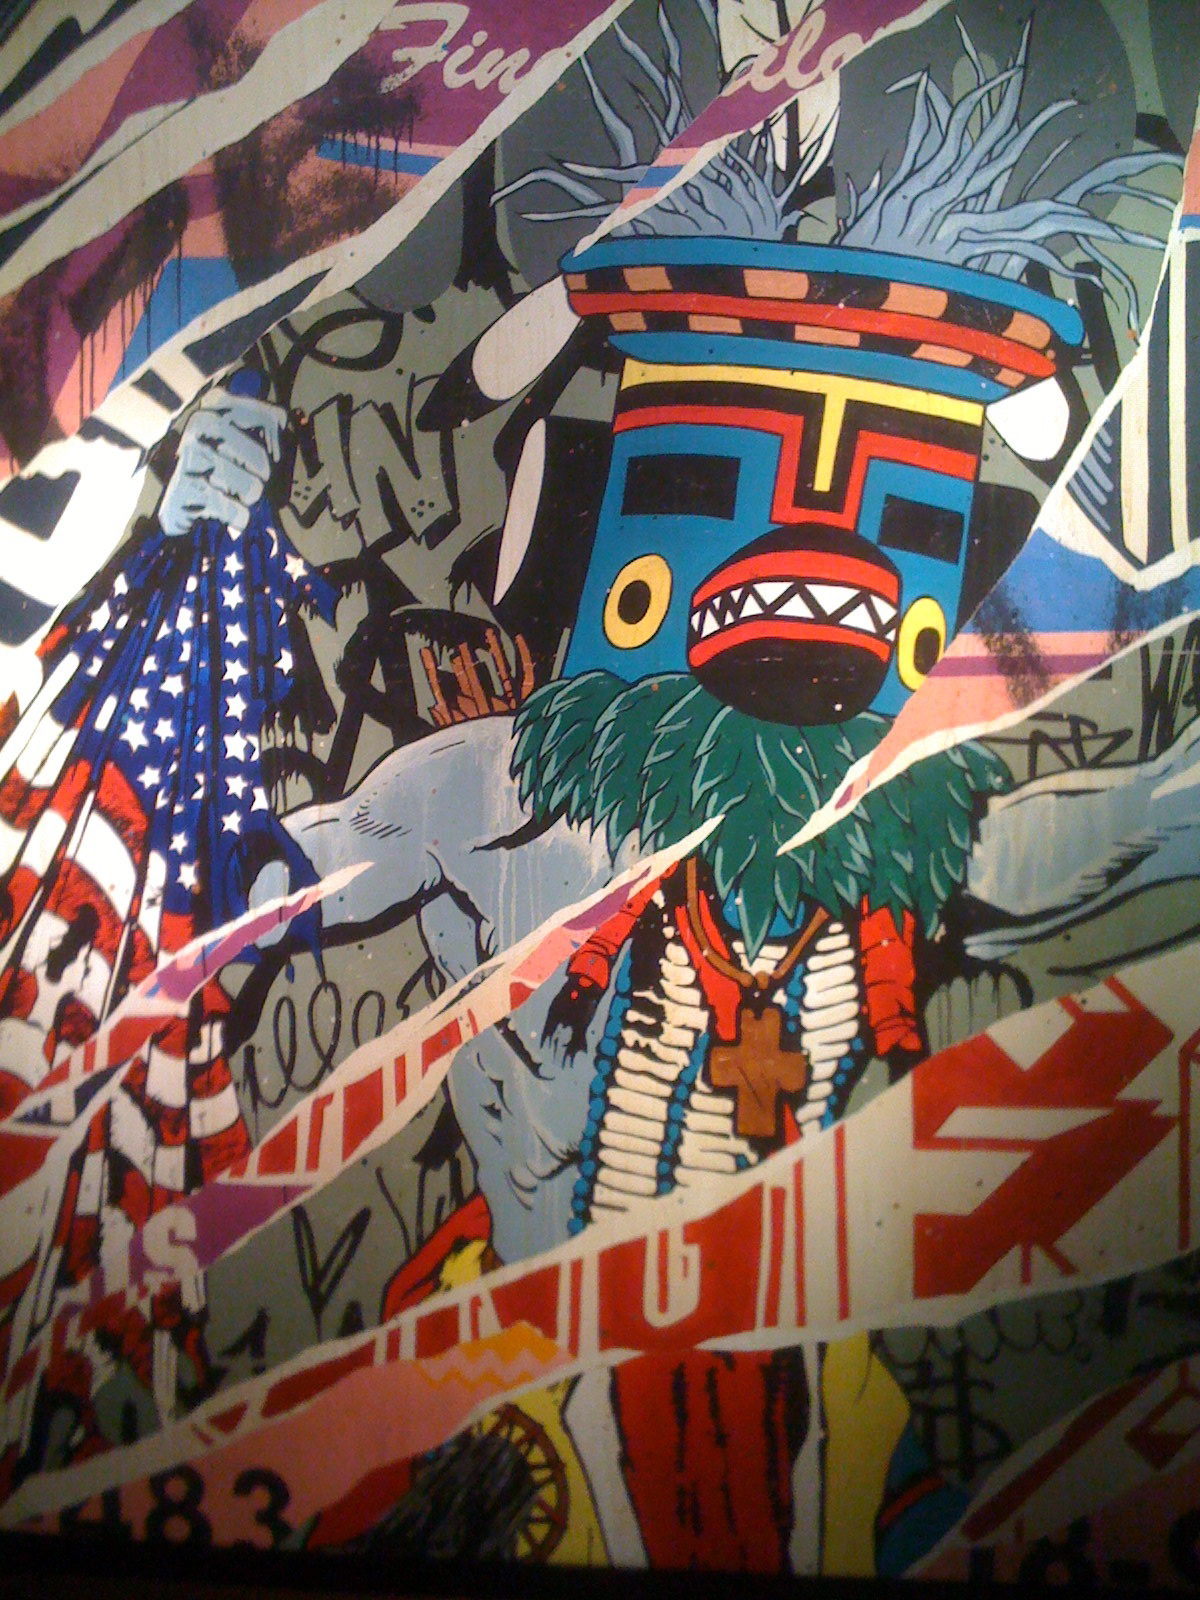 Faile canvas. Photo by RJ